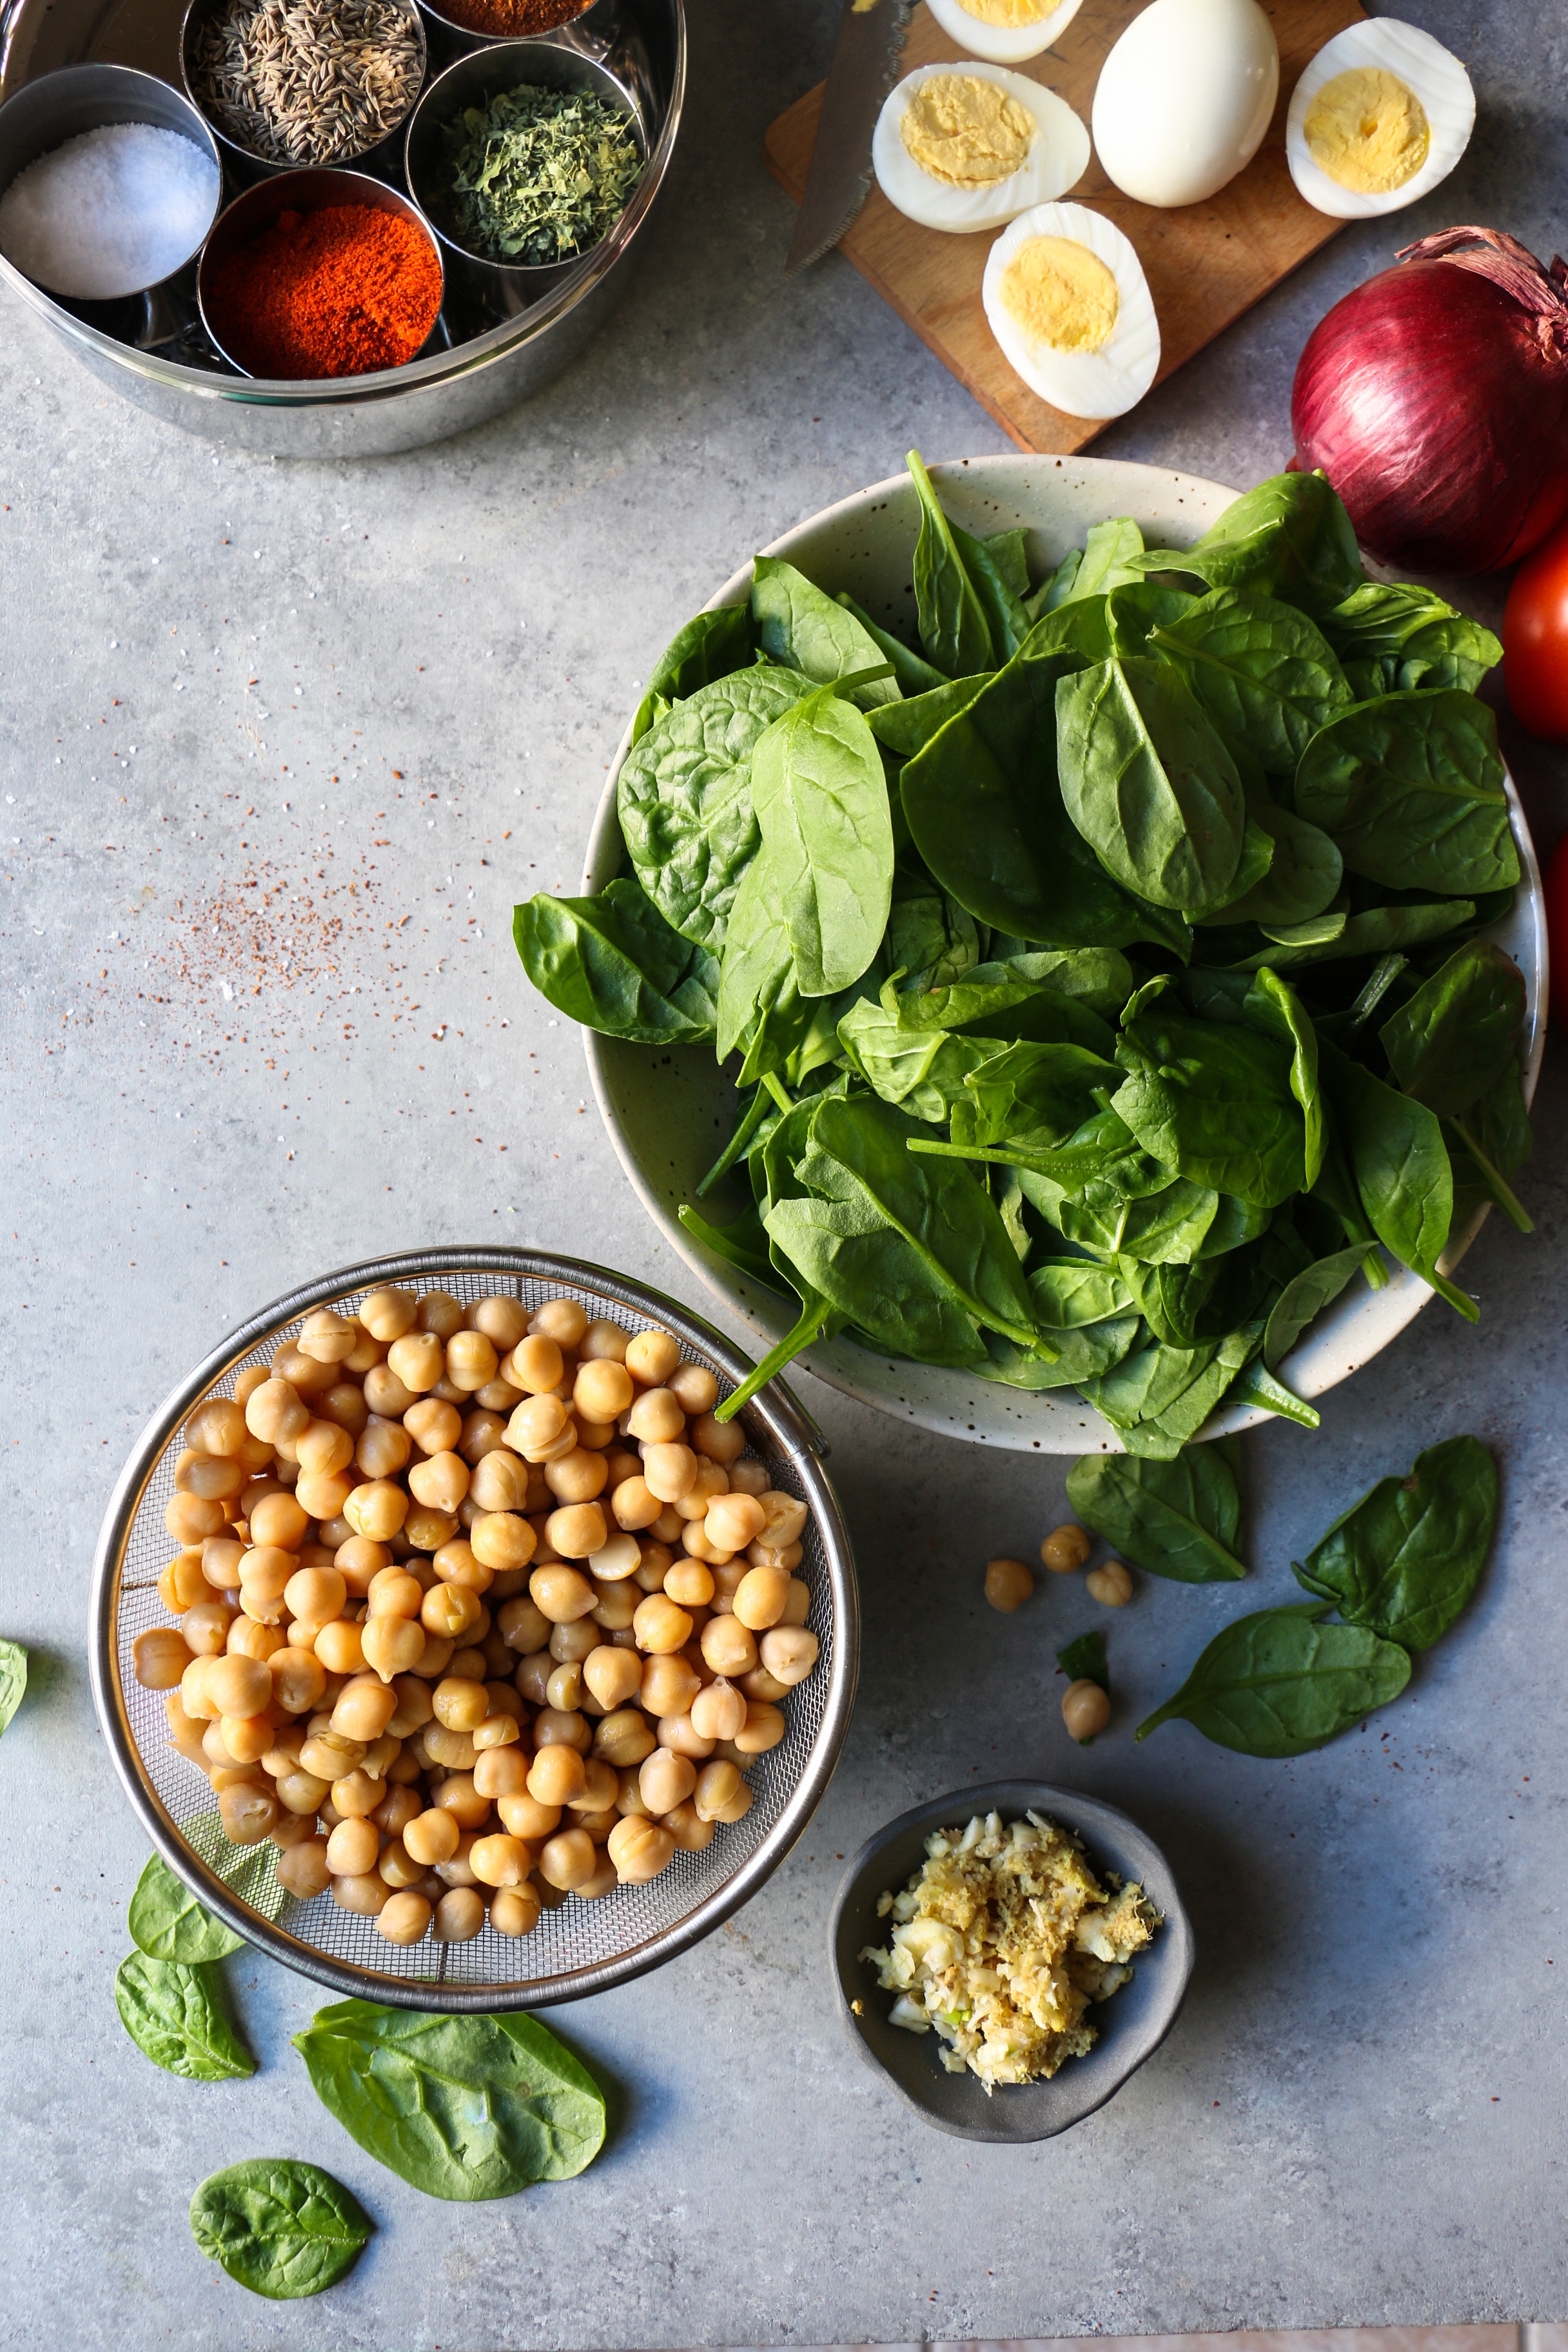 Quick Chickpea with Spinach Curry - 30 minute dish |foodfashionparty| #chickpeacurry #curry